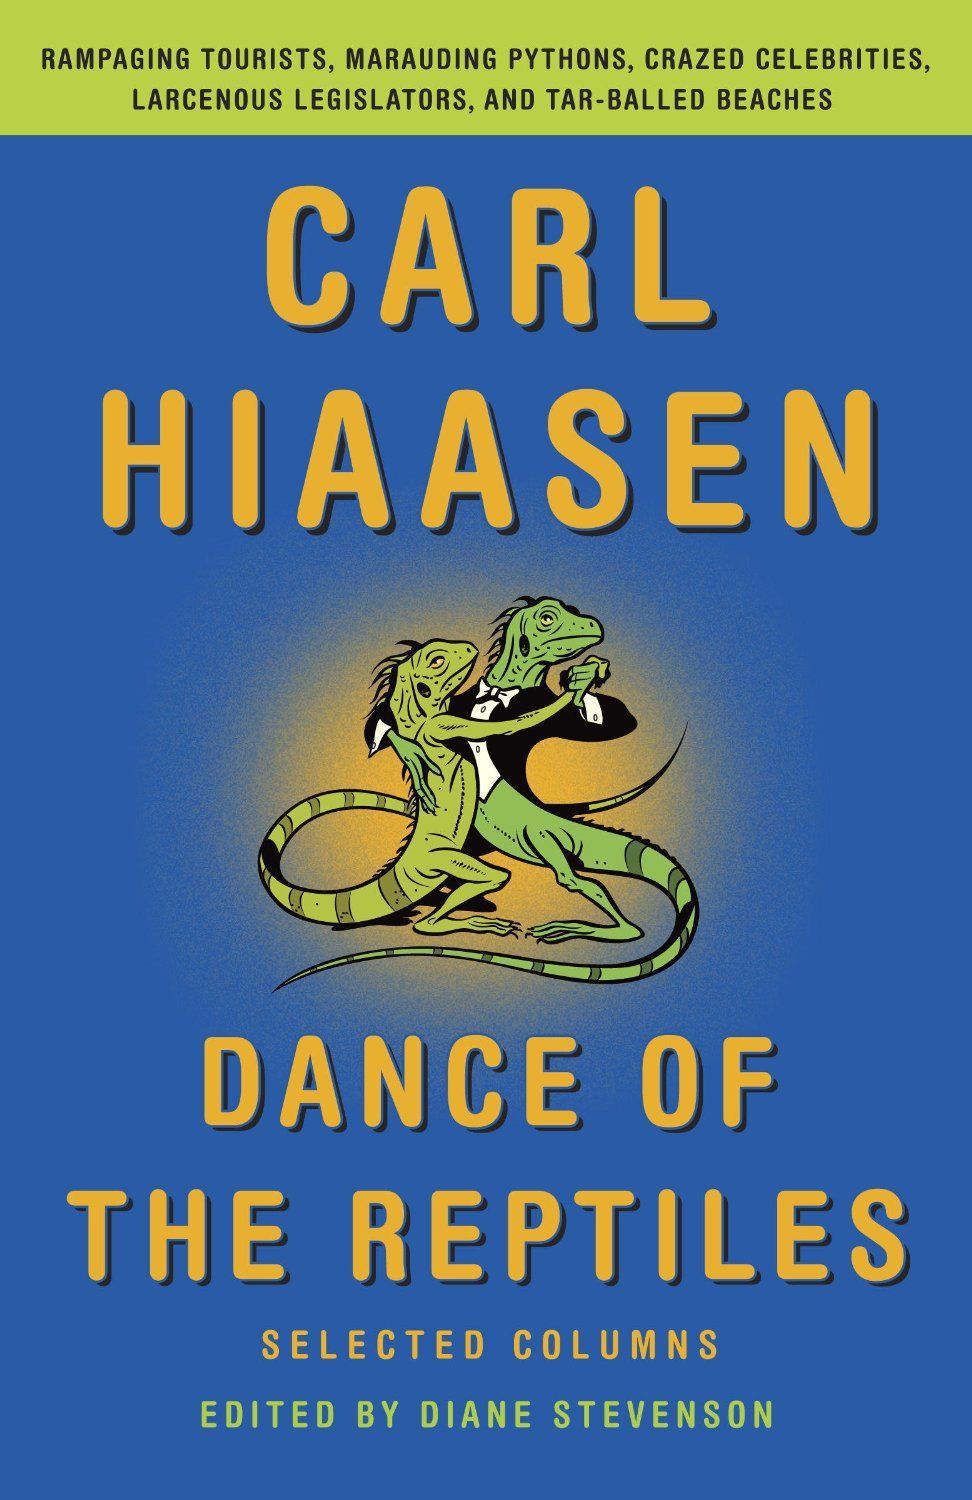 Review: Florida provides plenty fodder for famed columnist Carl Hiaasen